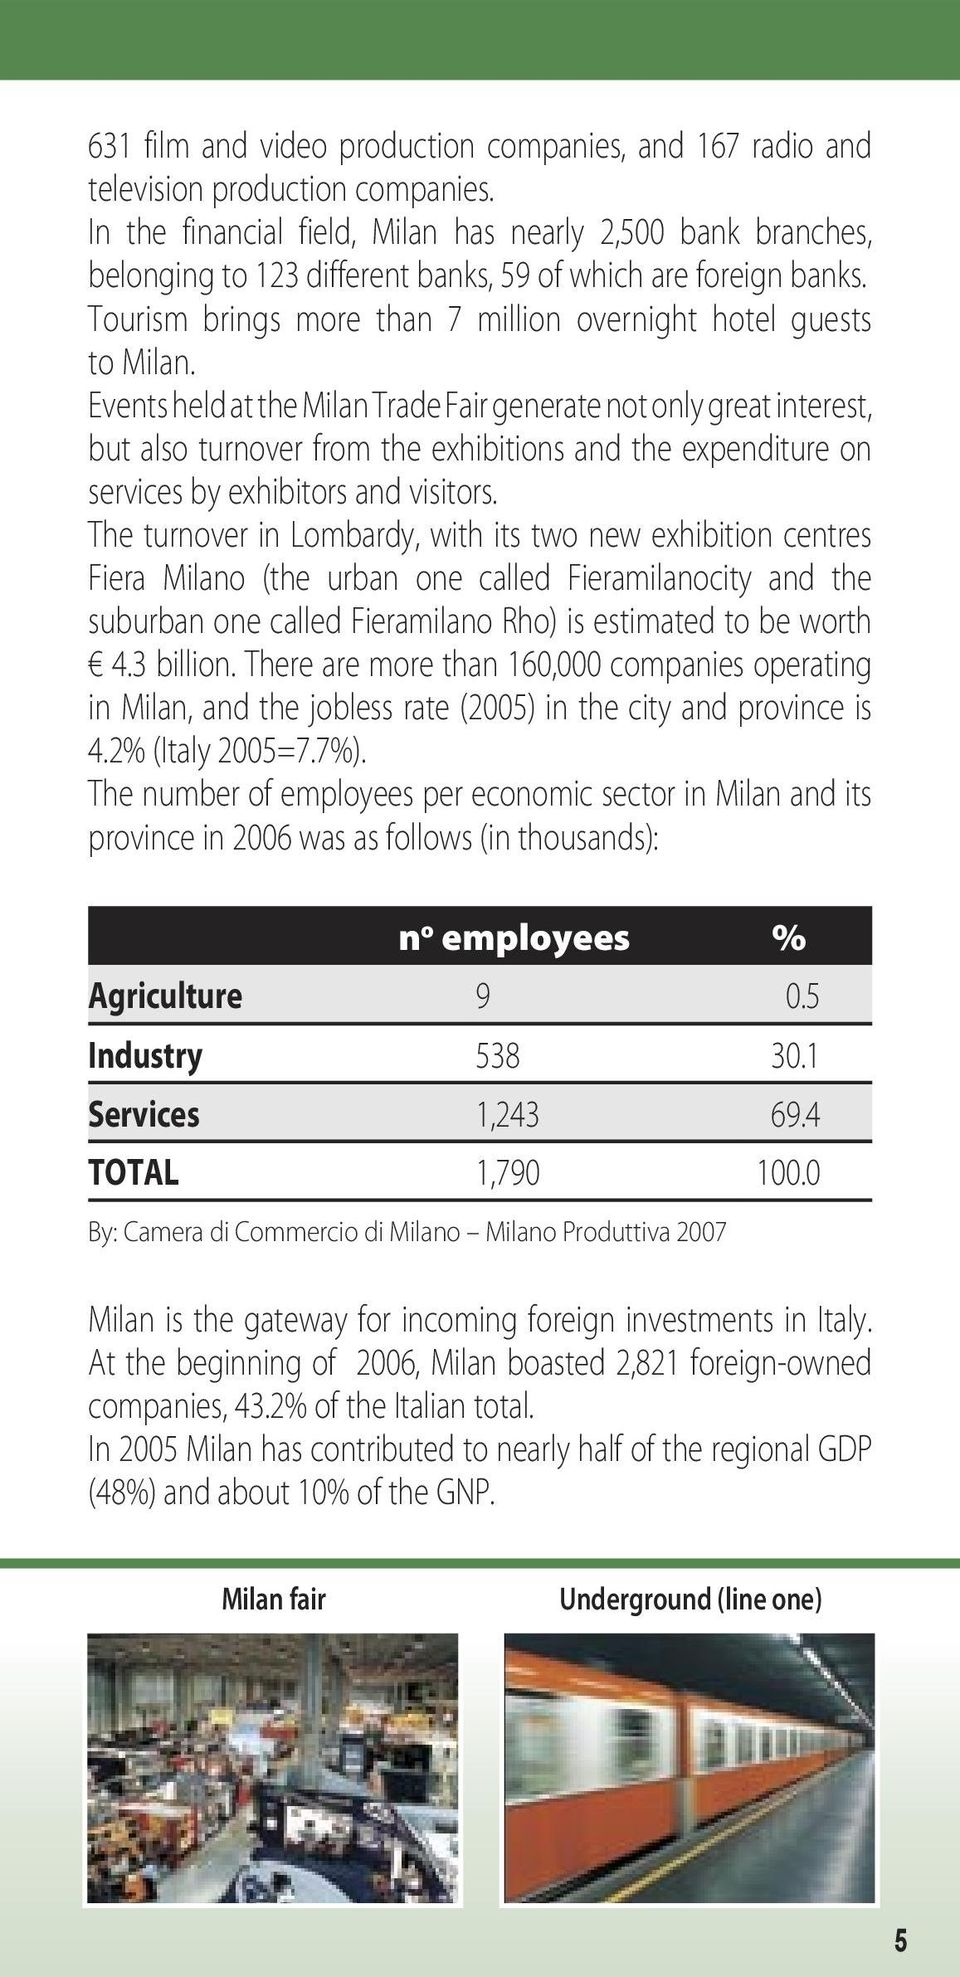 Events held at the Milan Trade Fair generate not only great interest, but also turnover from the exhibitions and the expenditure on services by exhibitors and visitors.